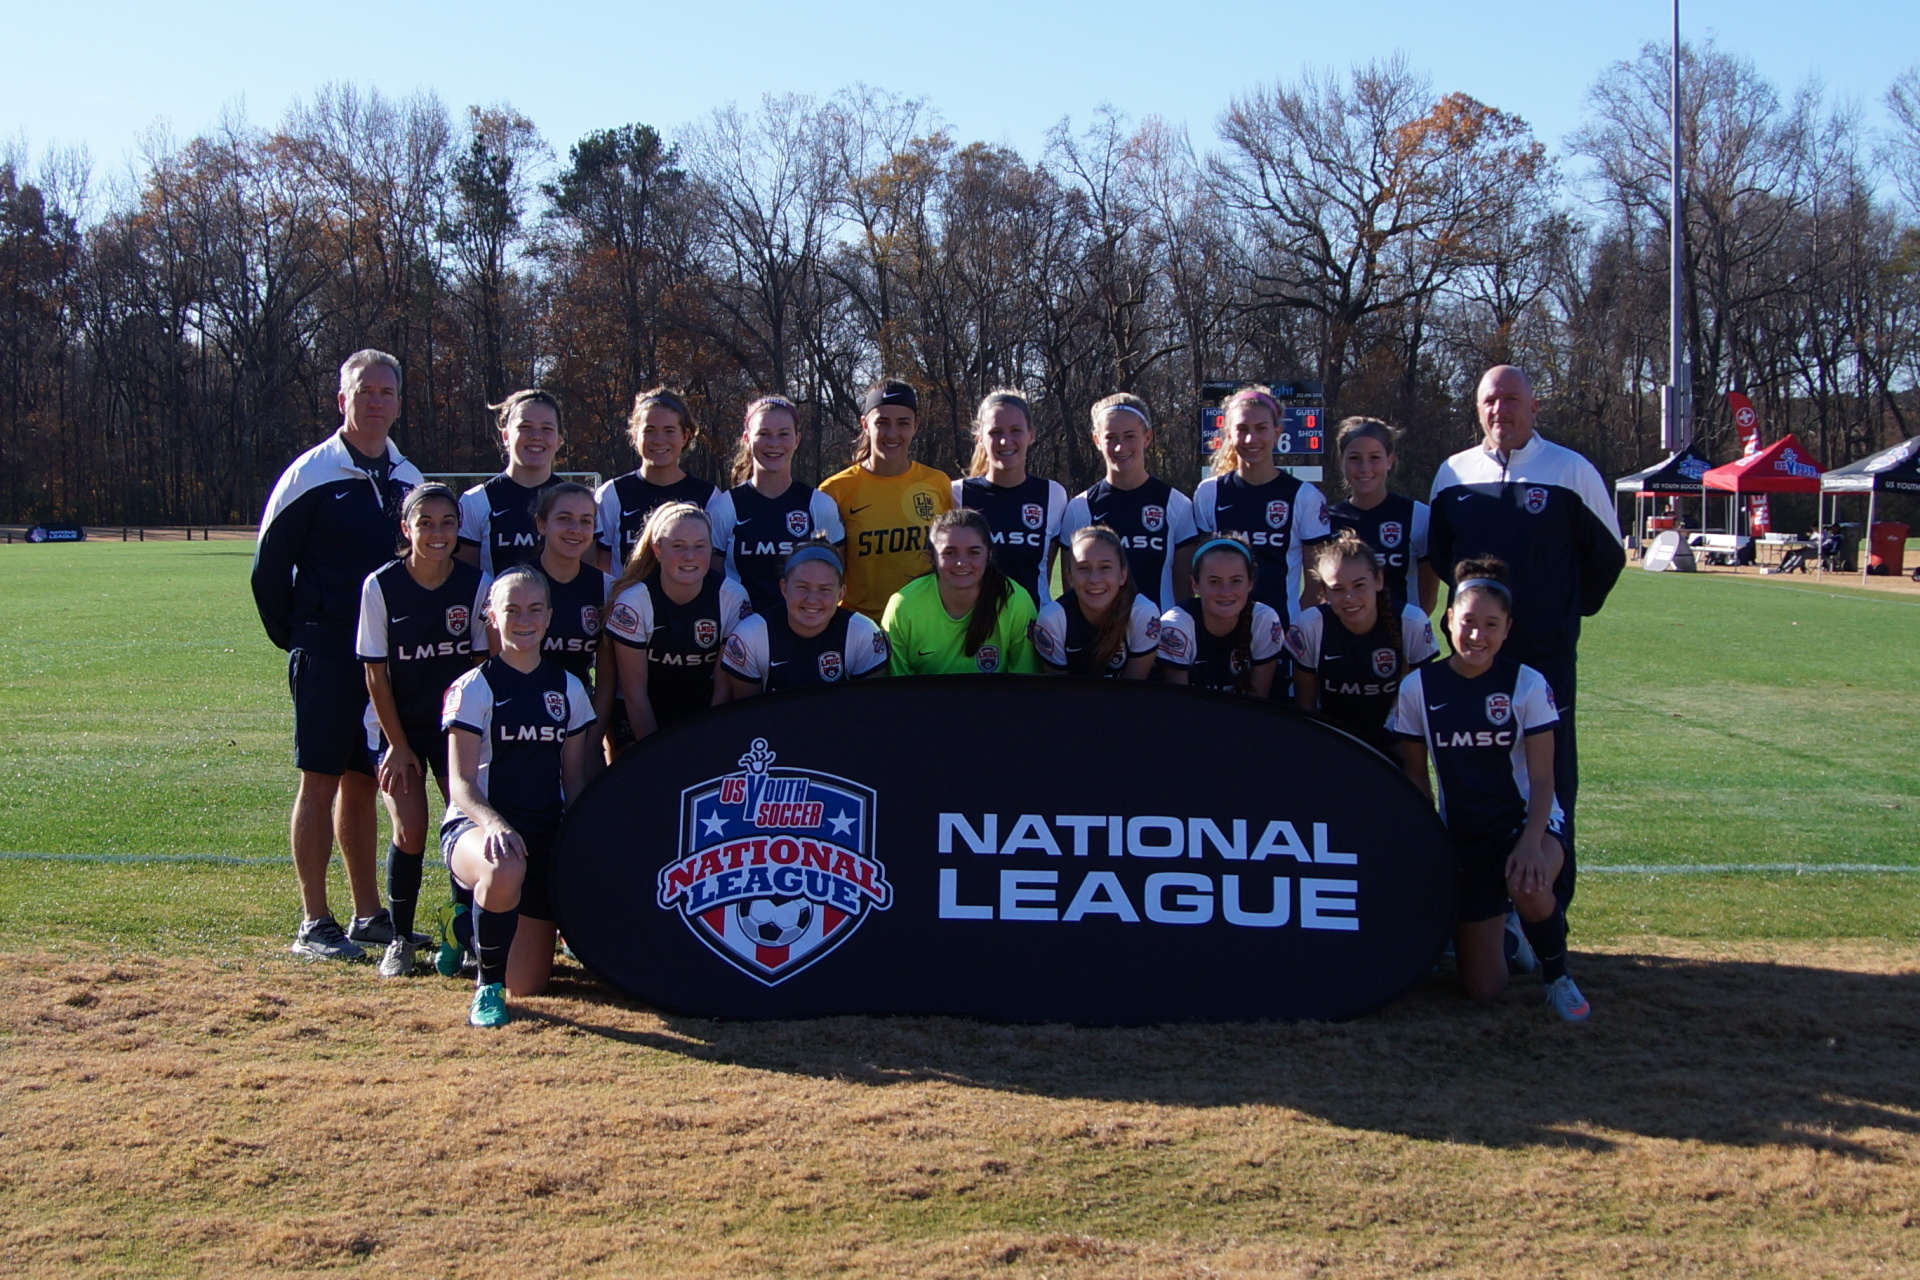 National League - Kickoff in North Carolina